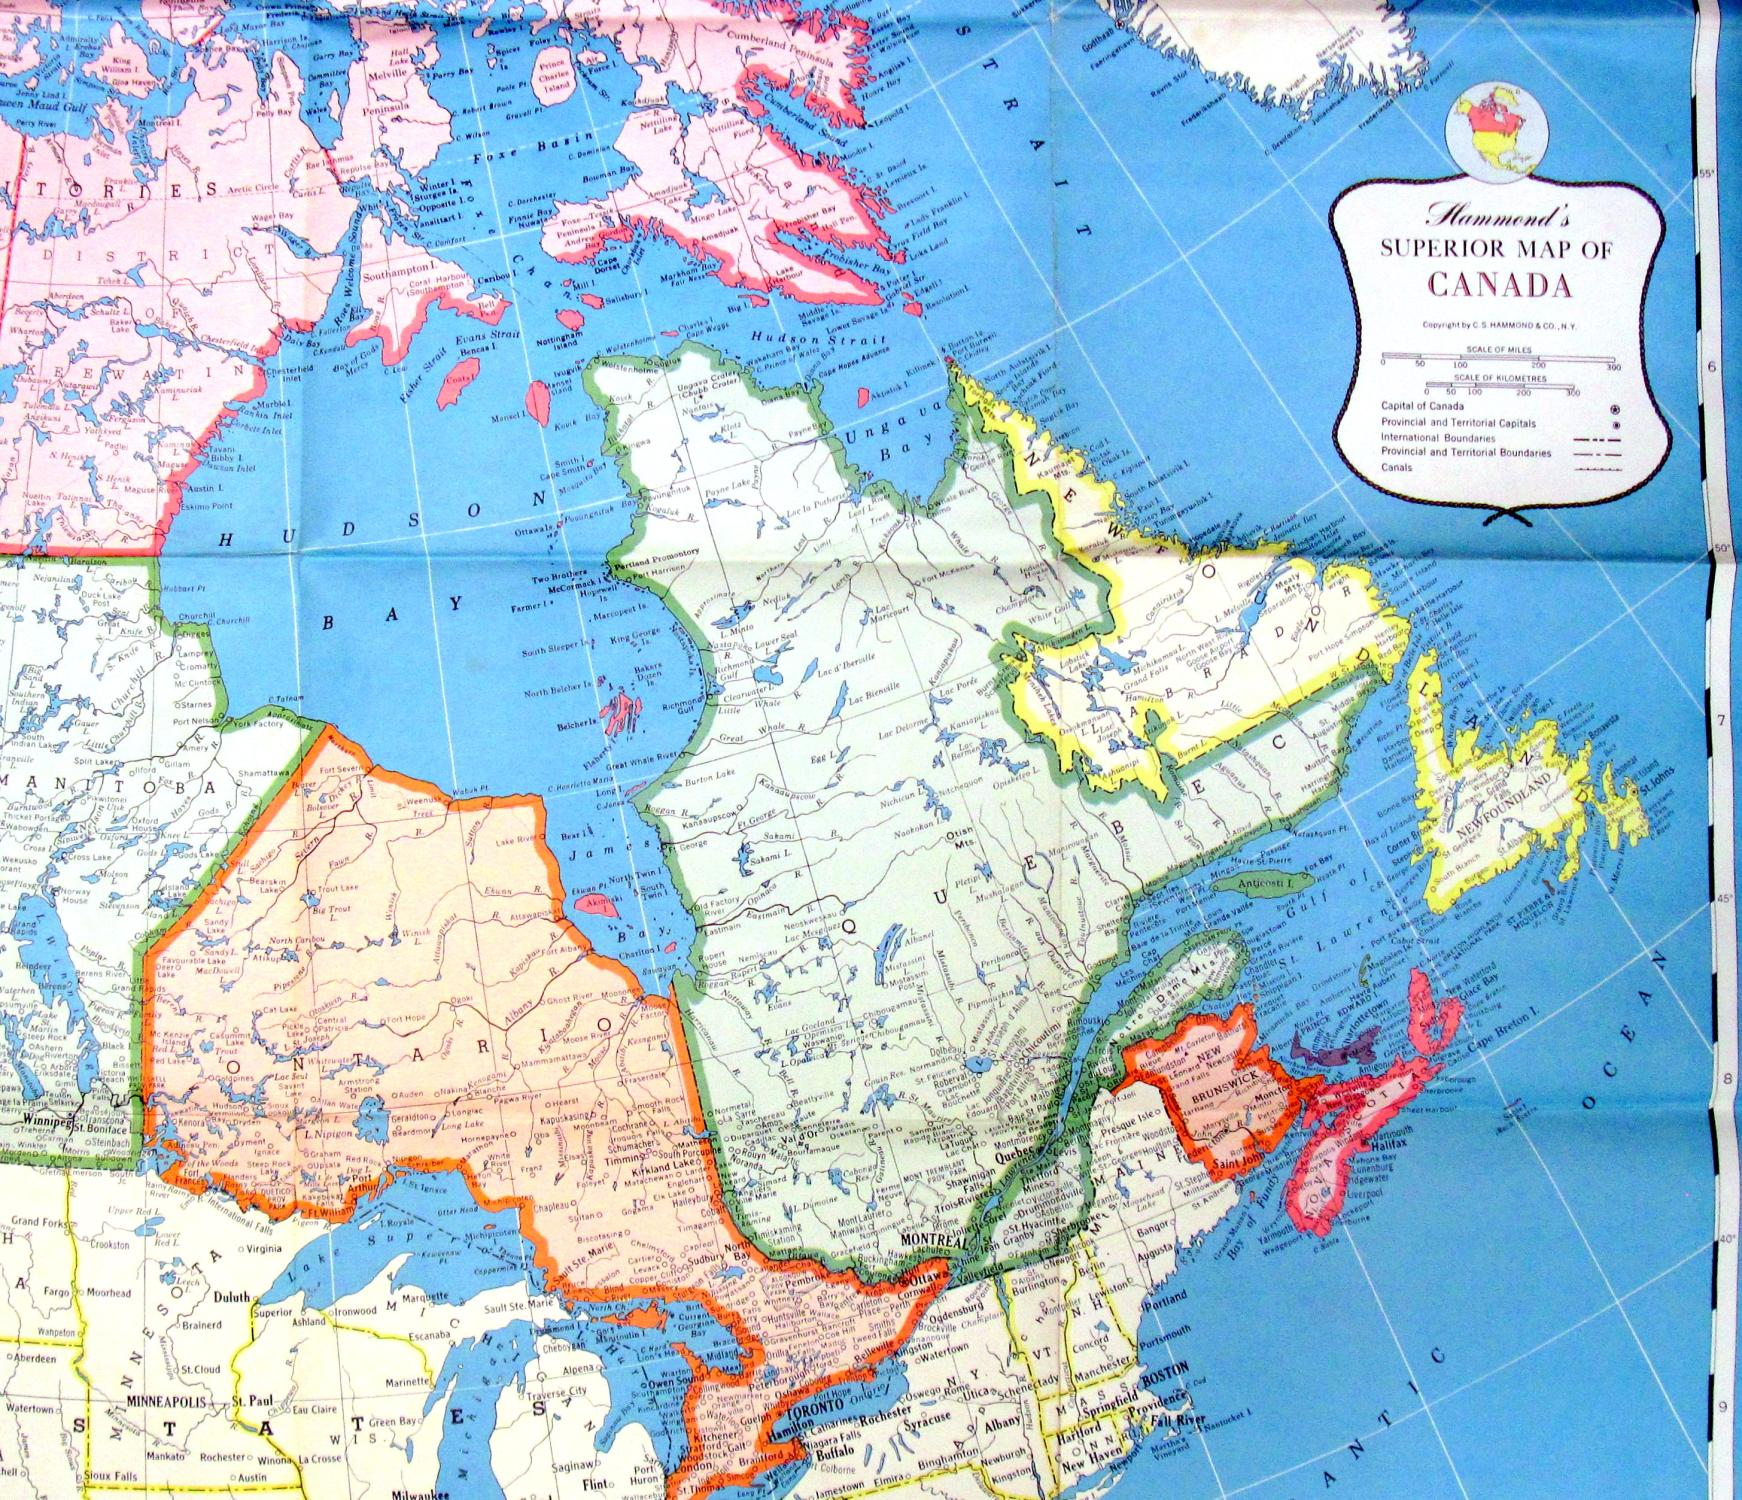 Hammonds superior map of canada by large fold out wall map hammond hammonds superior map of canada large fold out wall gumiabroncs Choice Image